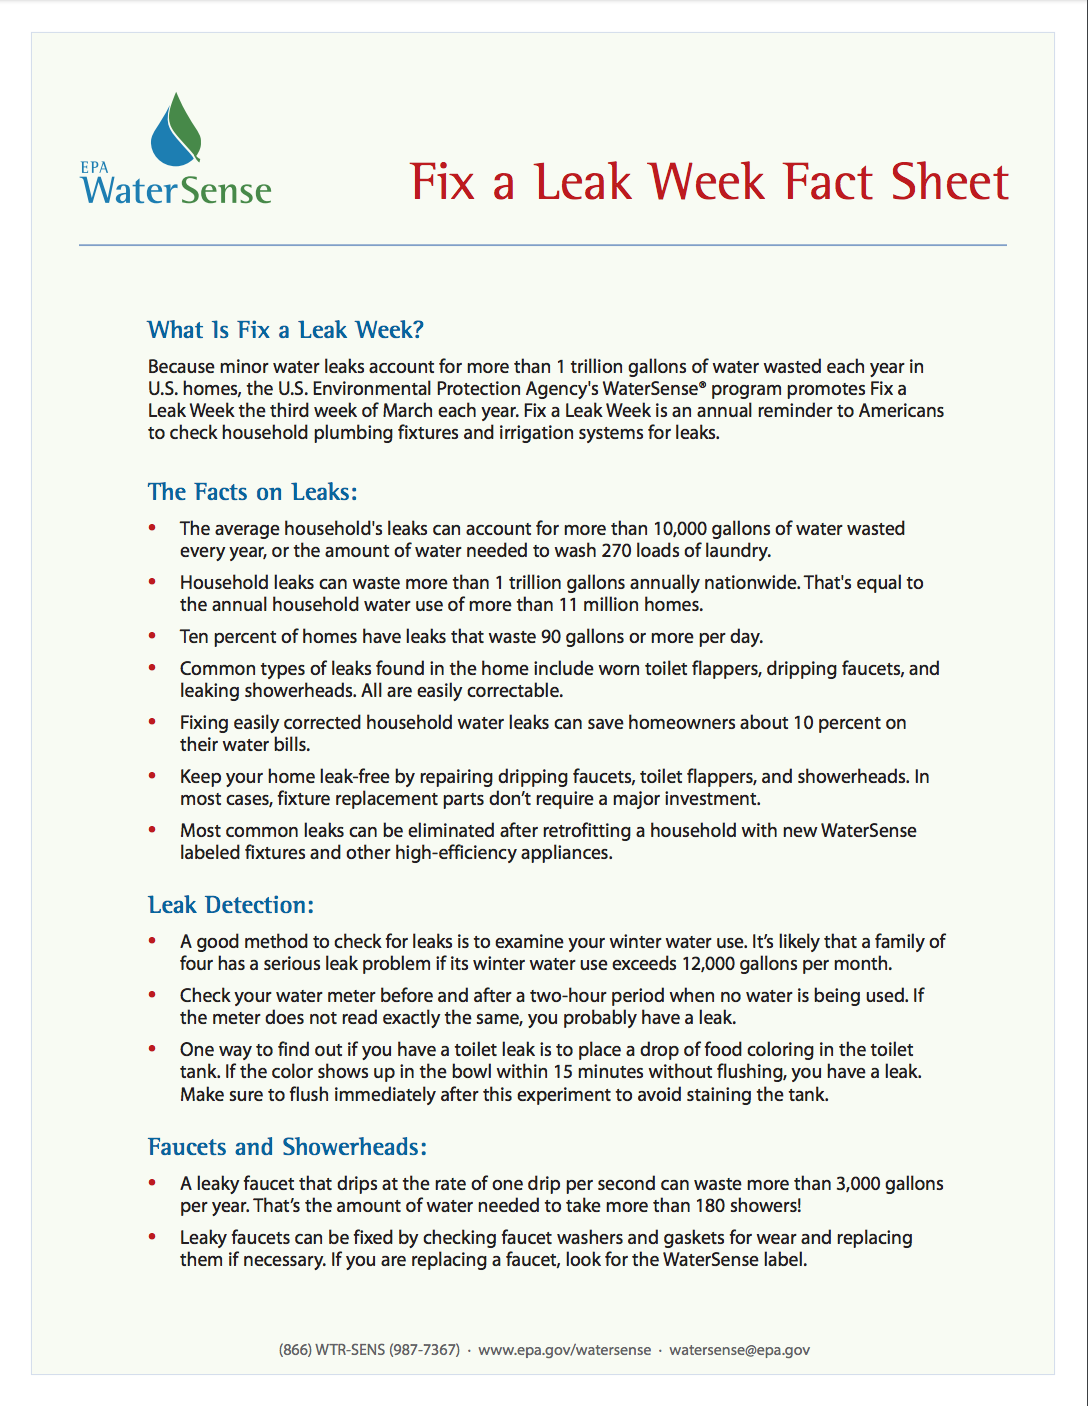 leak detection and facts on leaks